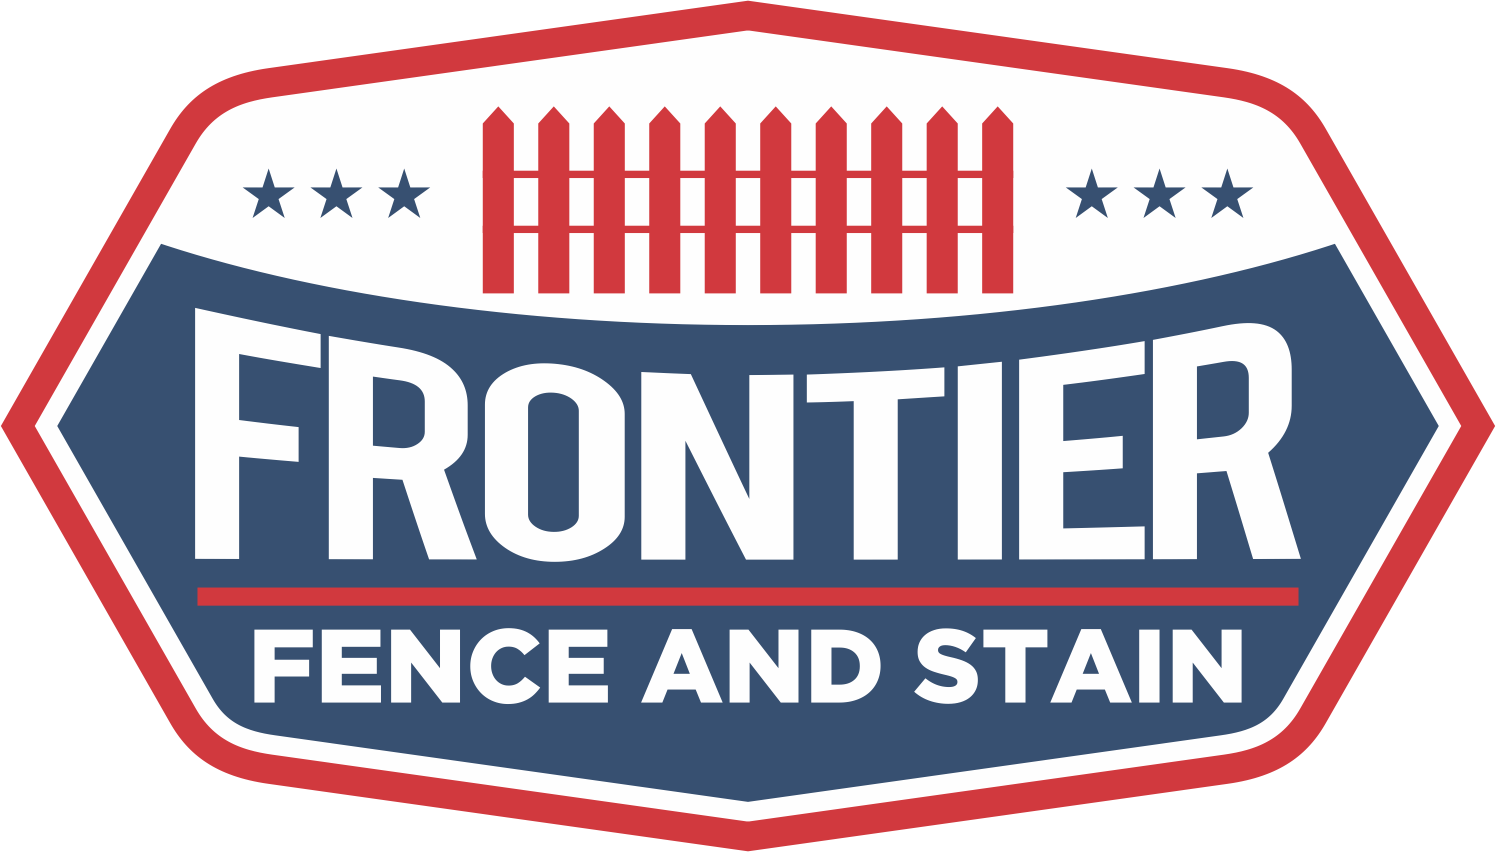 Frontier Fence and Stain